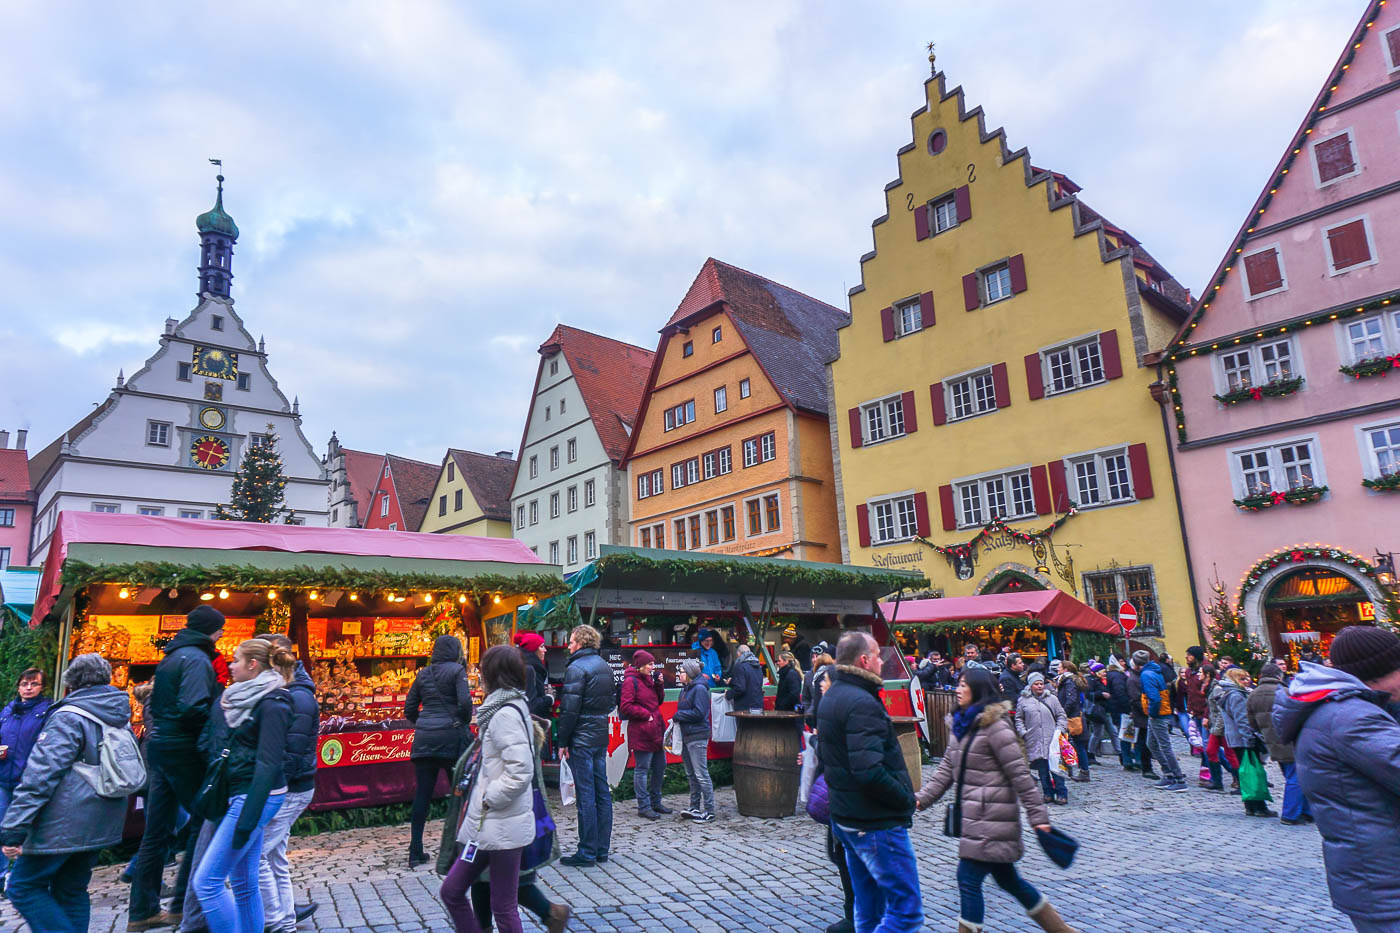 Rothenburg ob der Tauber Christmas Markets via Wayfaring With Wagner